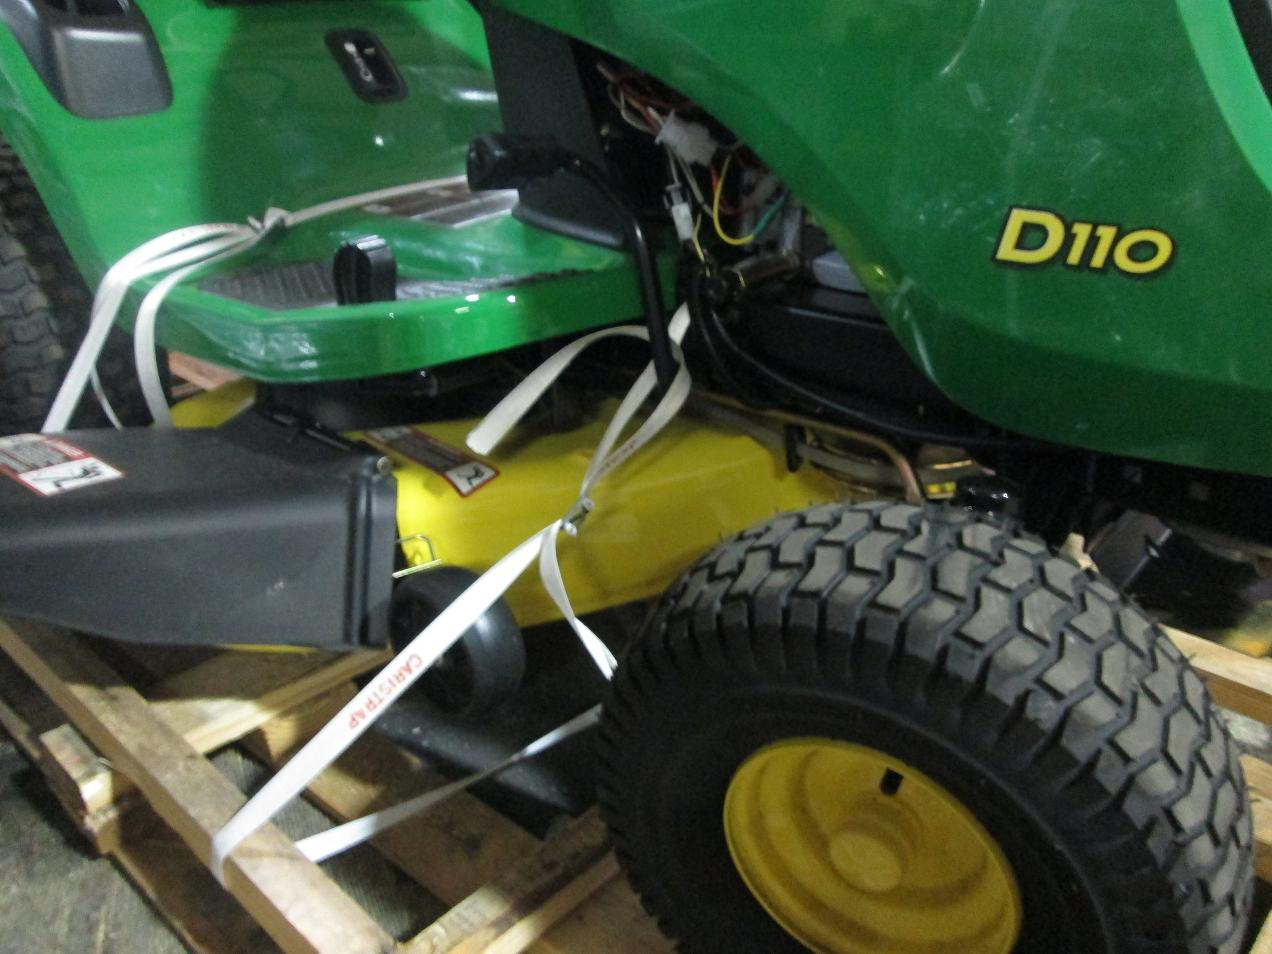 John Deere D110 Service Manual Wiring Diagram